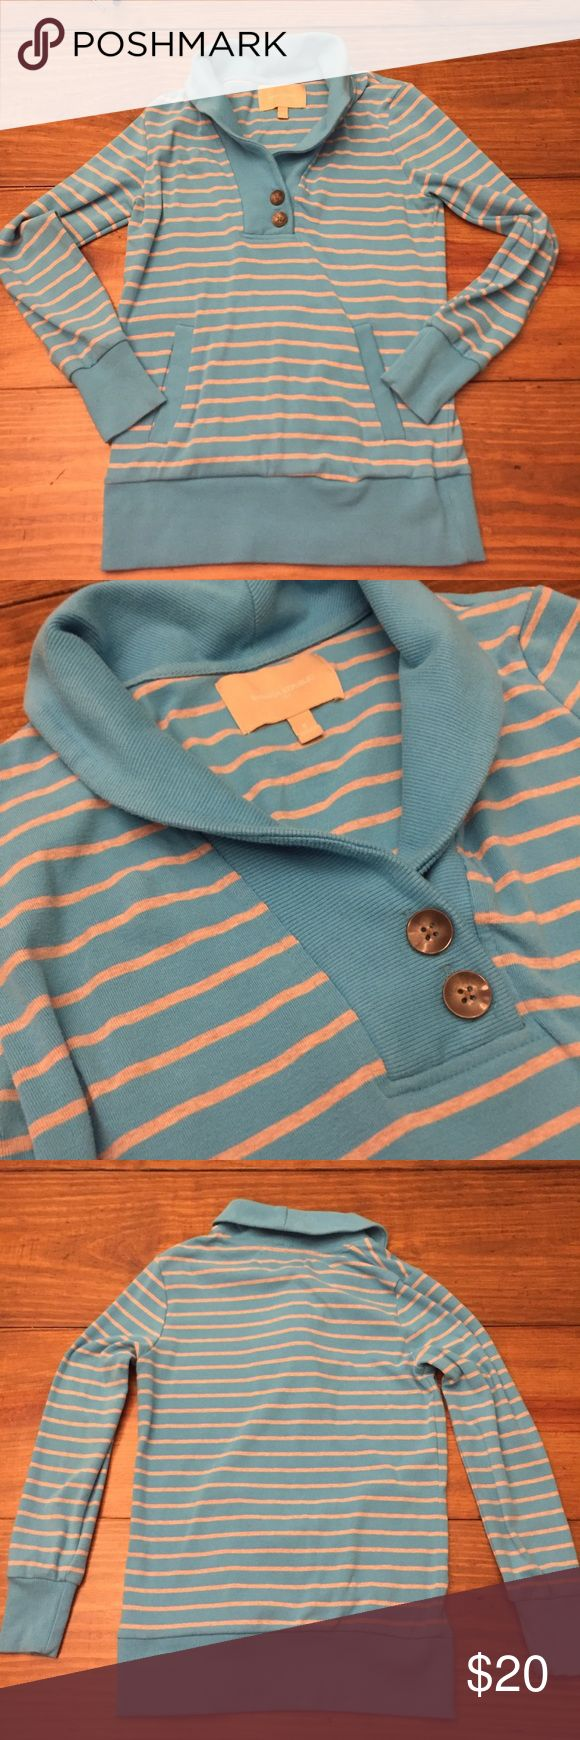 Banana Republic Shawl Neck Collared Sweater Very comfy Small Banana Republic Sweater with pockets. Color is light blue with grey stripes. Pockets in front. Excellent Condition Banana Republic Tops Sweatshirts & Hoodies